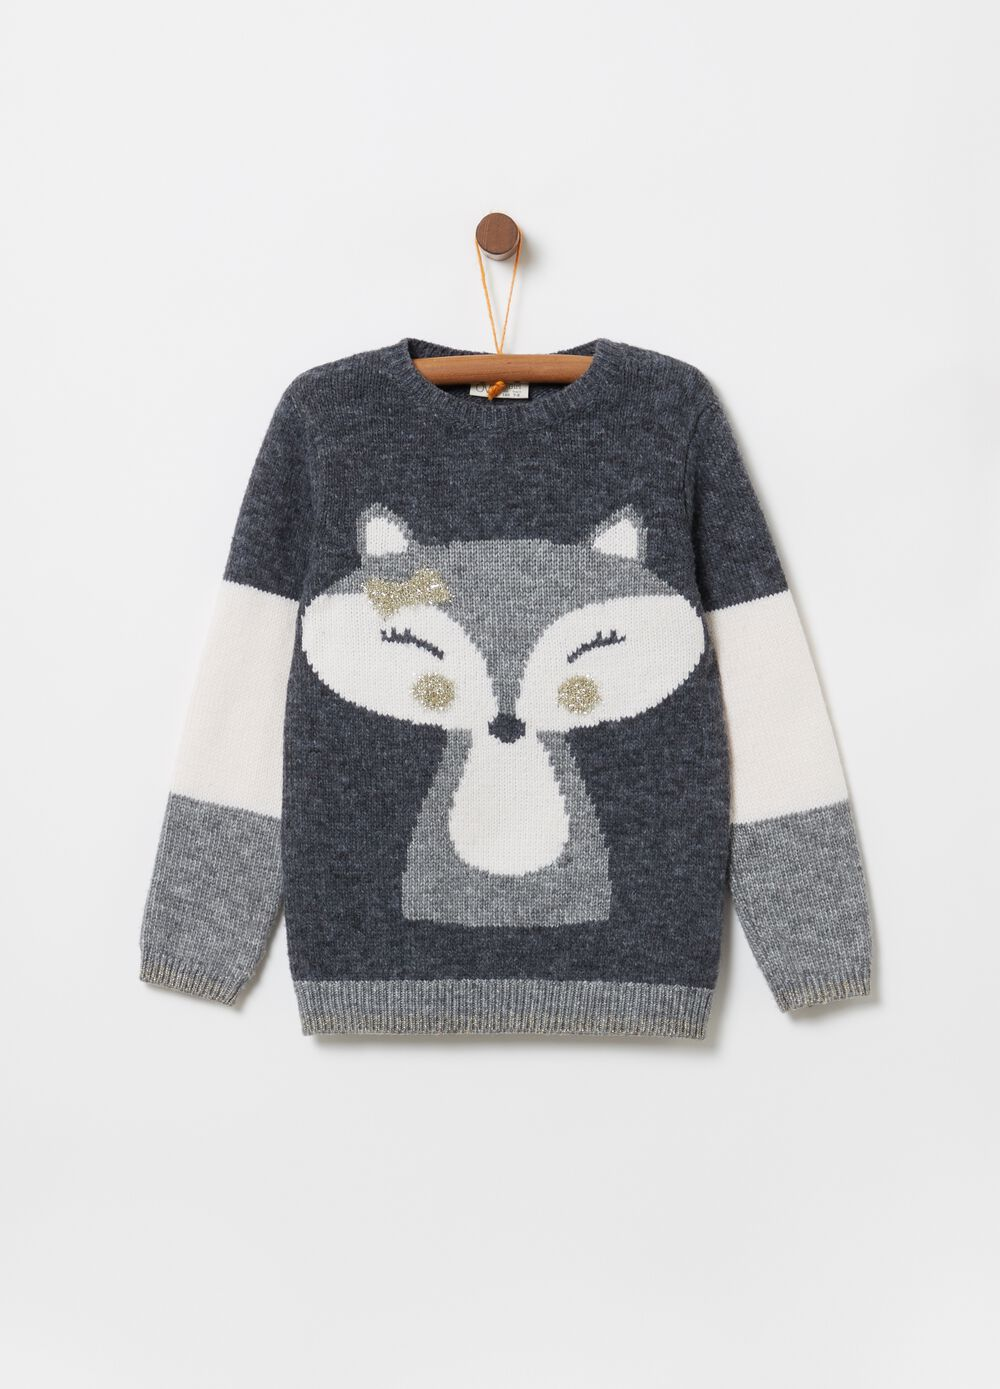 Knitted pullover with animal embroidery and lurex